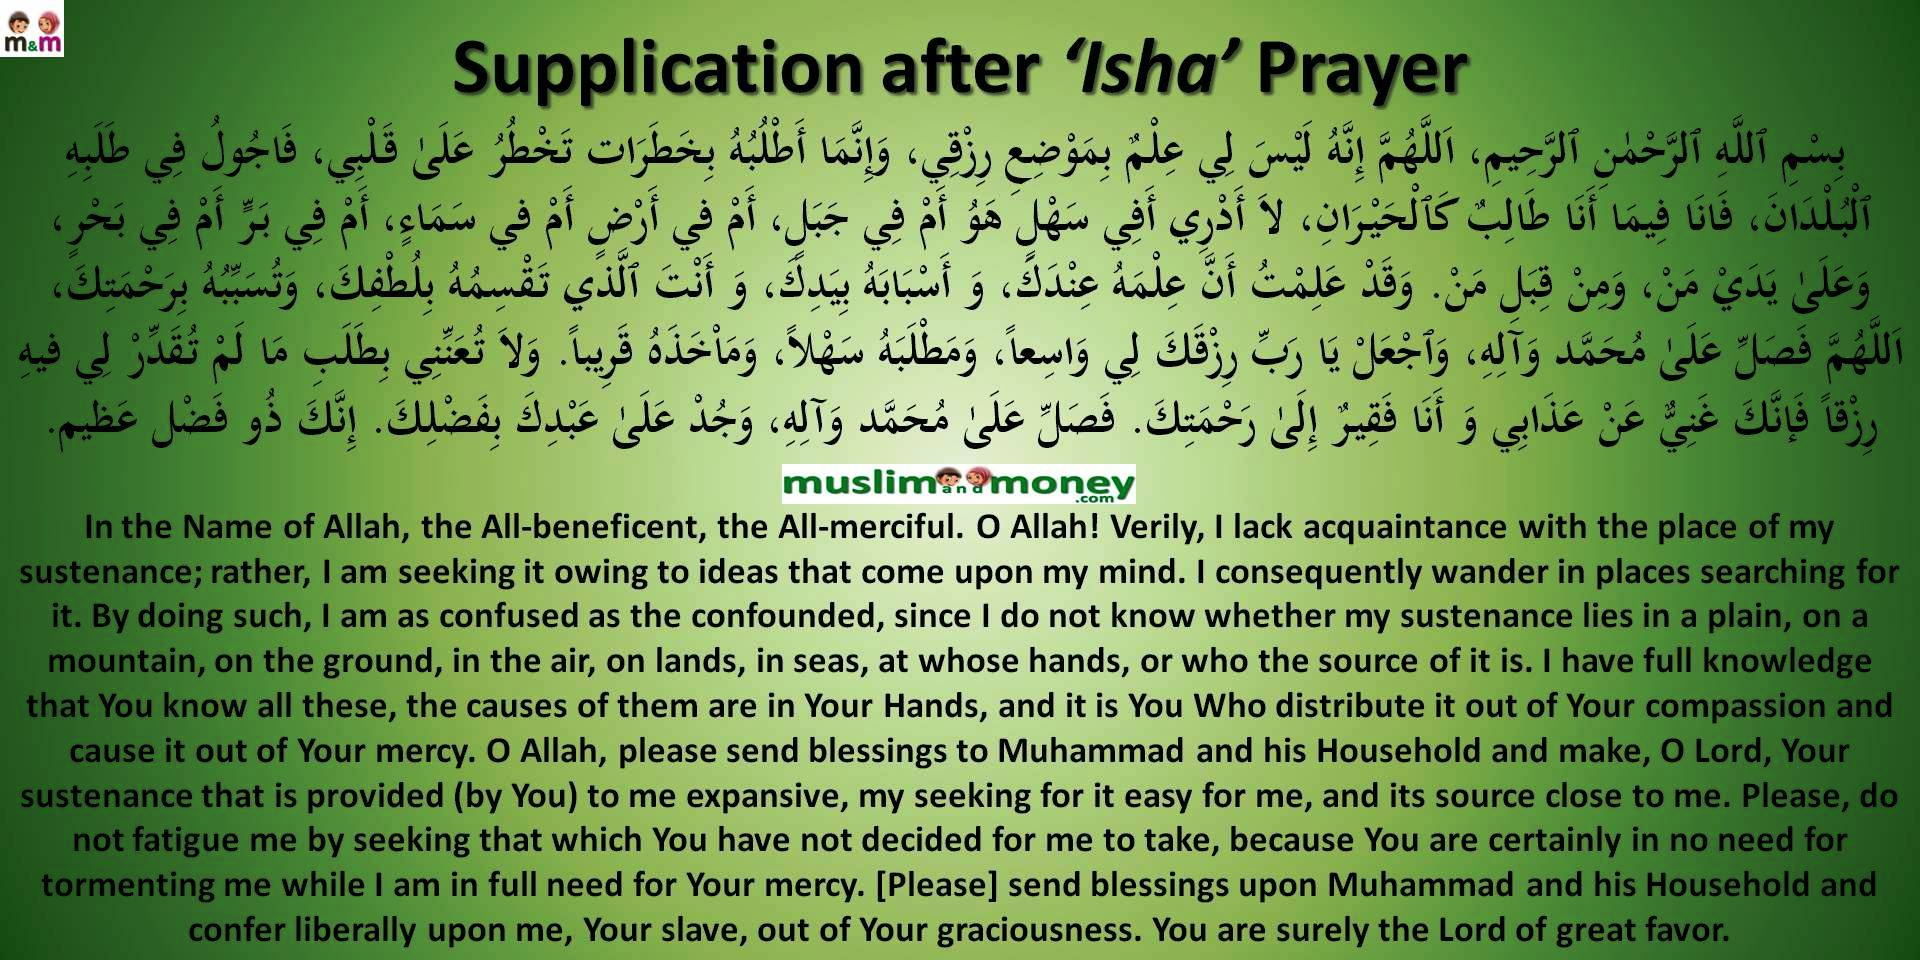 Supplication after 'Isha' Prayer | Muslim and Money